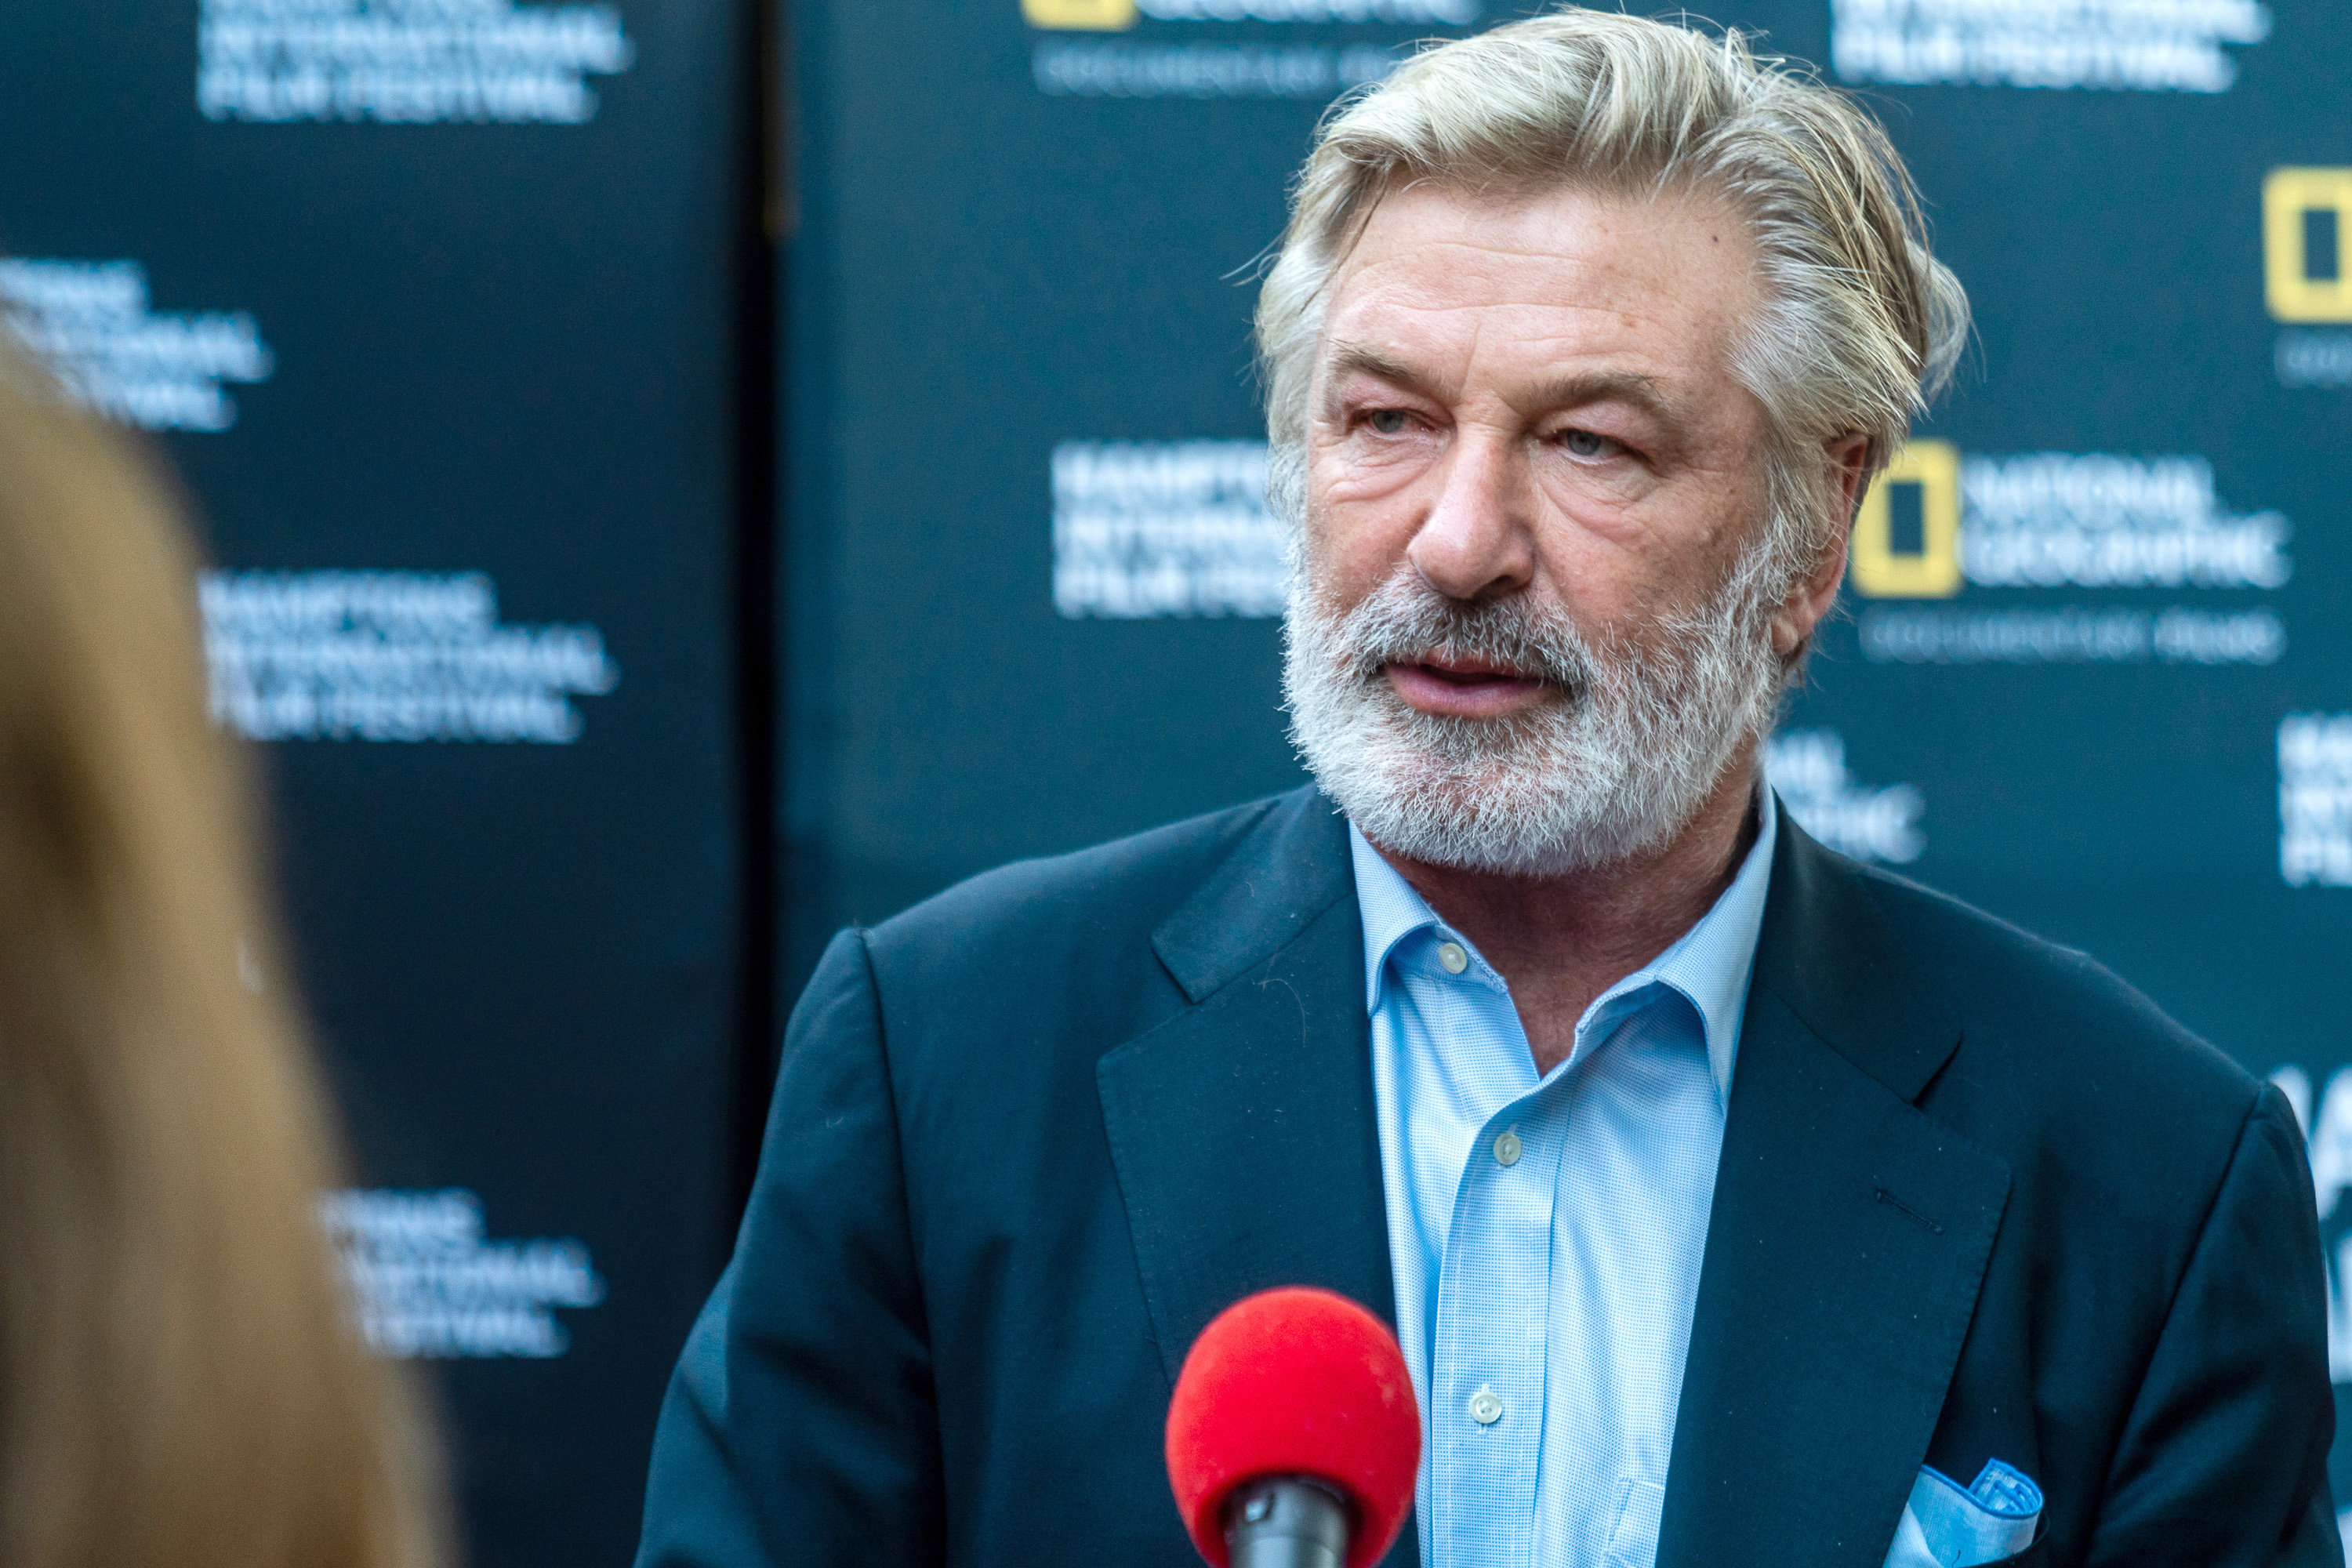 Alec Baldwin attends a National Geographic premiere in East Hampton, New York.